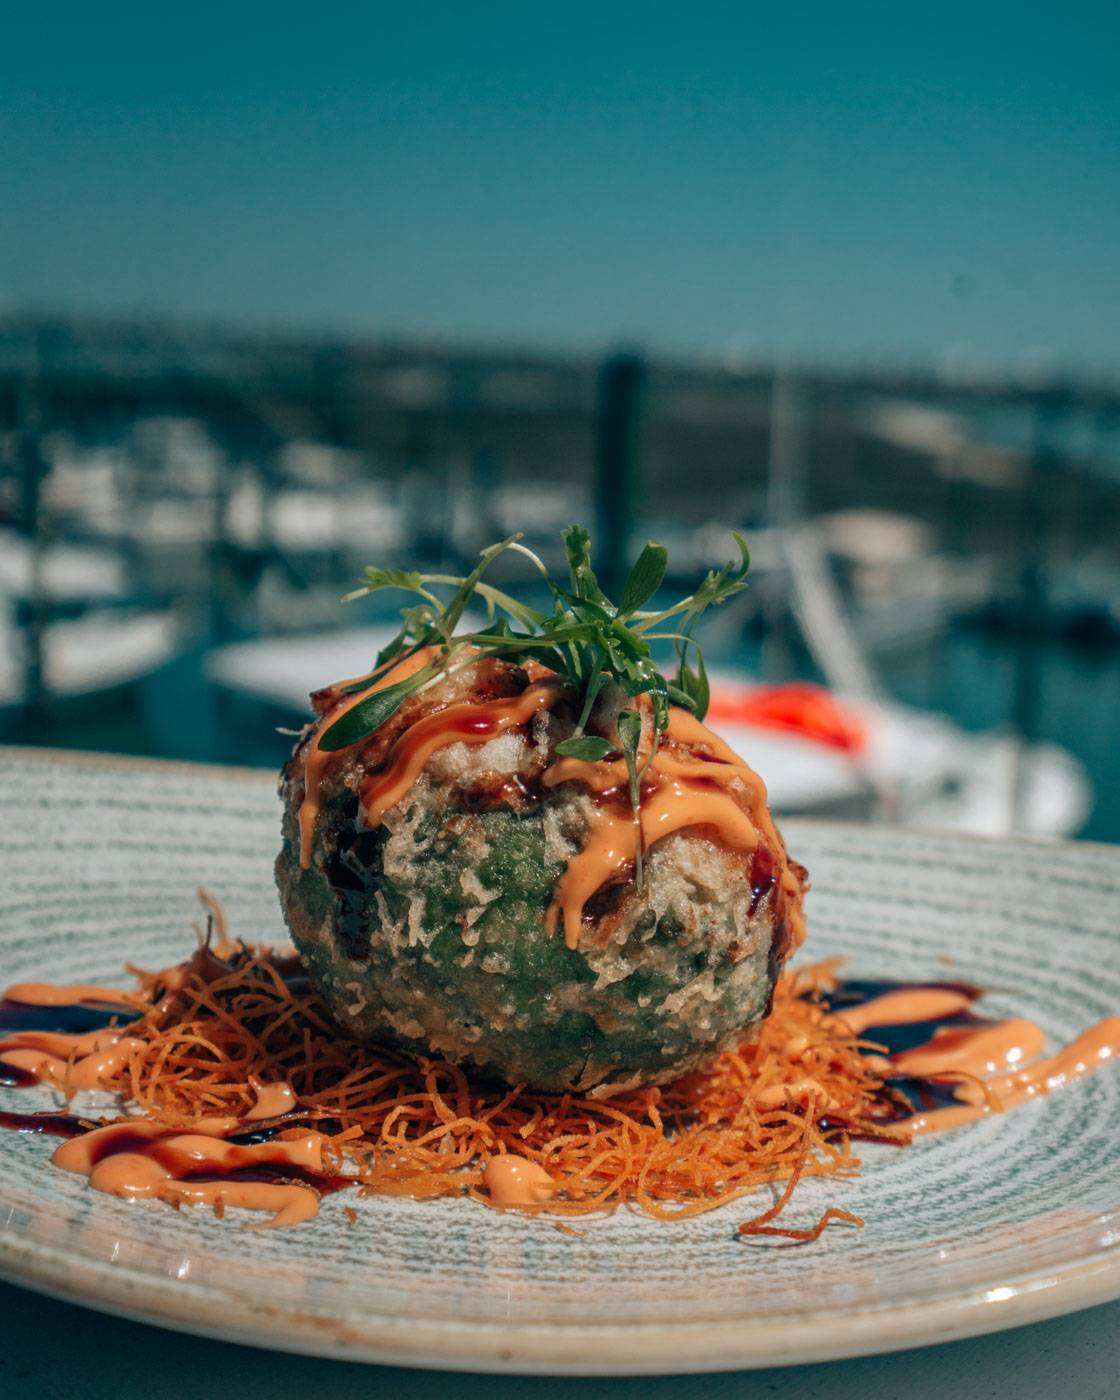 The girlfriend's guide to Myrtle beach- where to stay, what to do, and where to eat to have the best time including the delicious menu at the Wicked Tuna